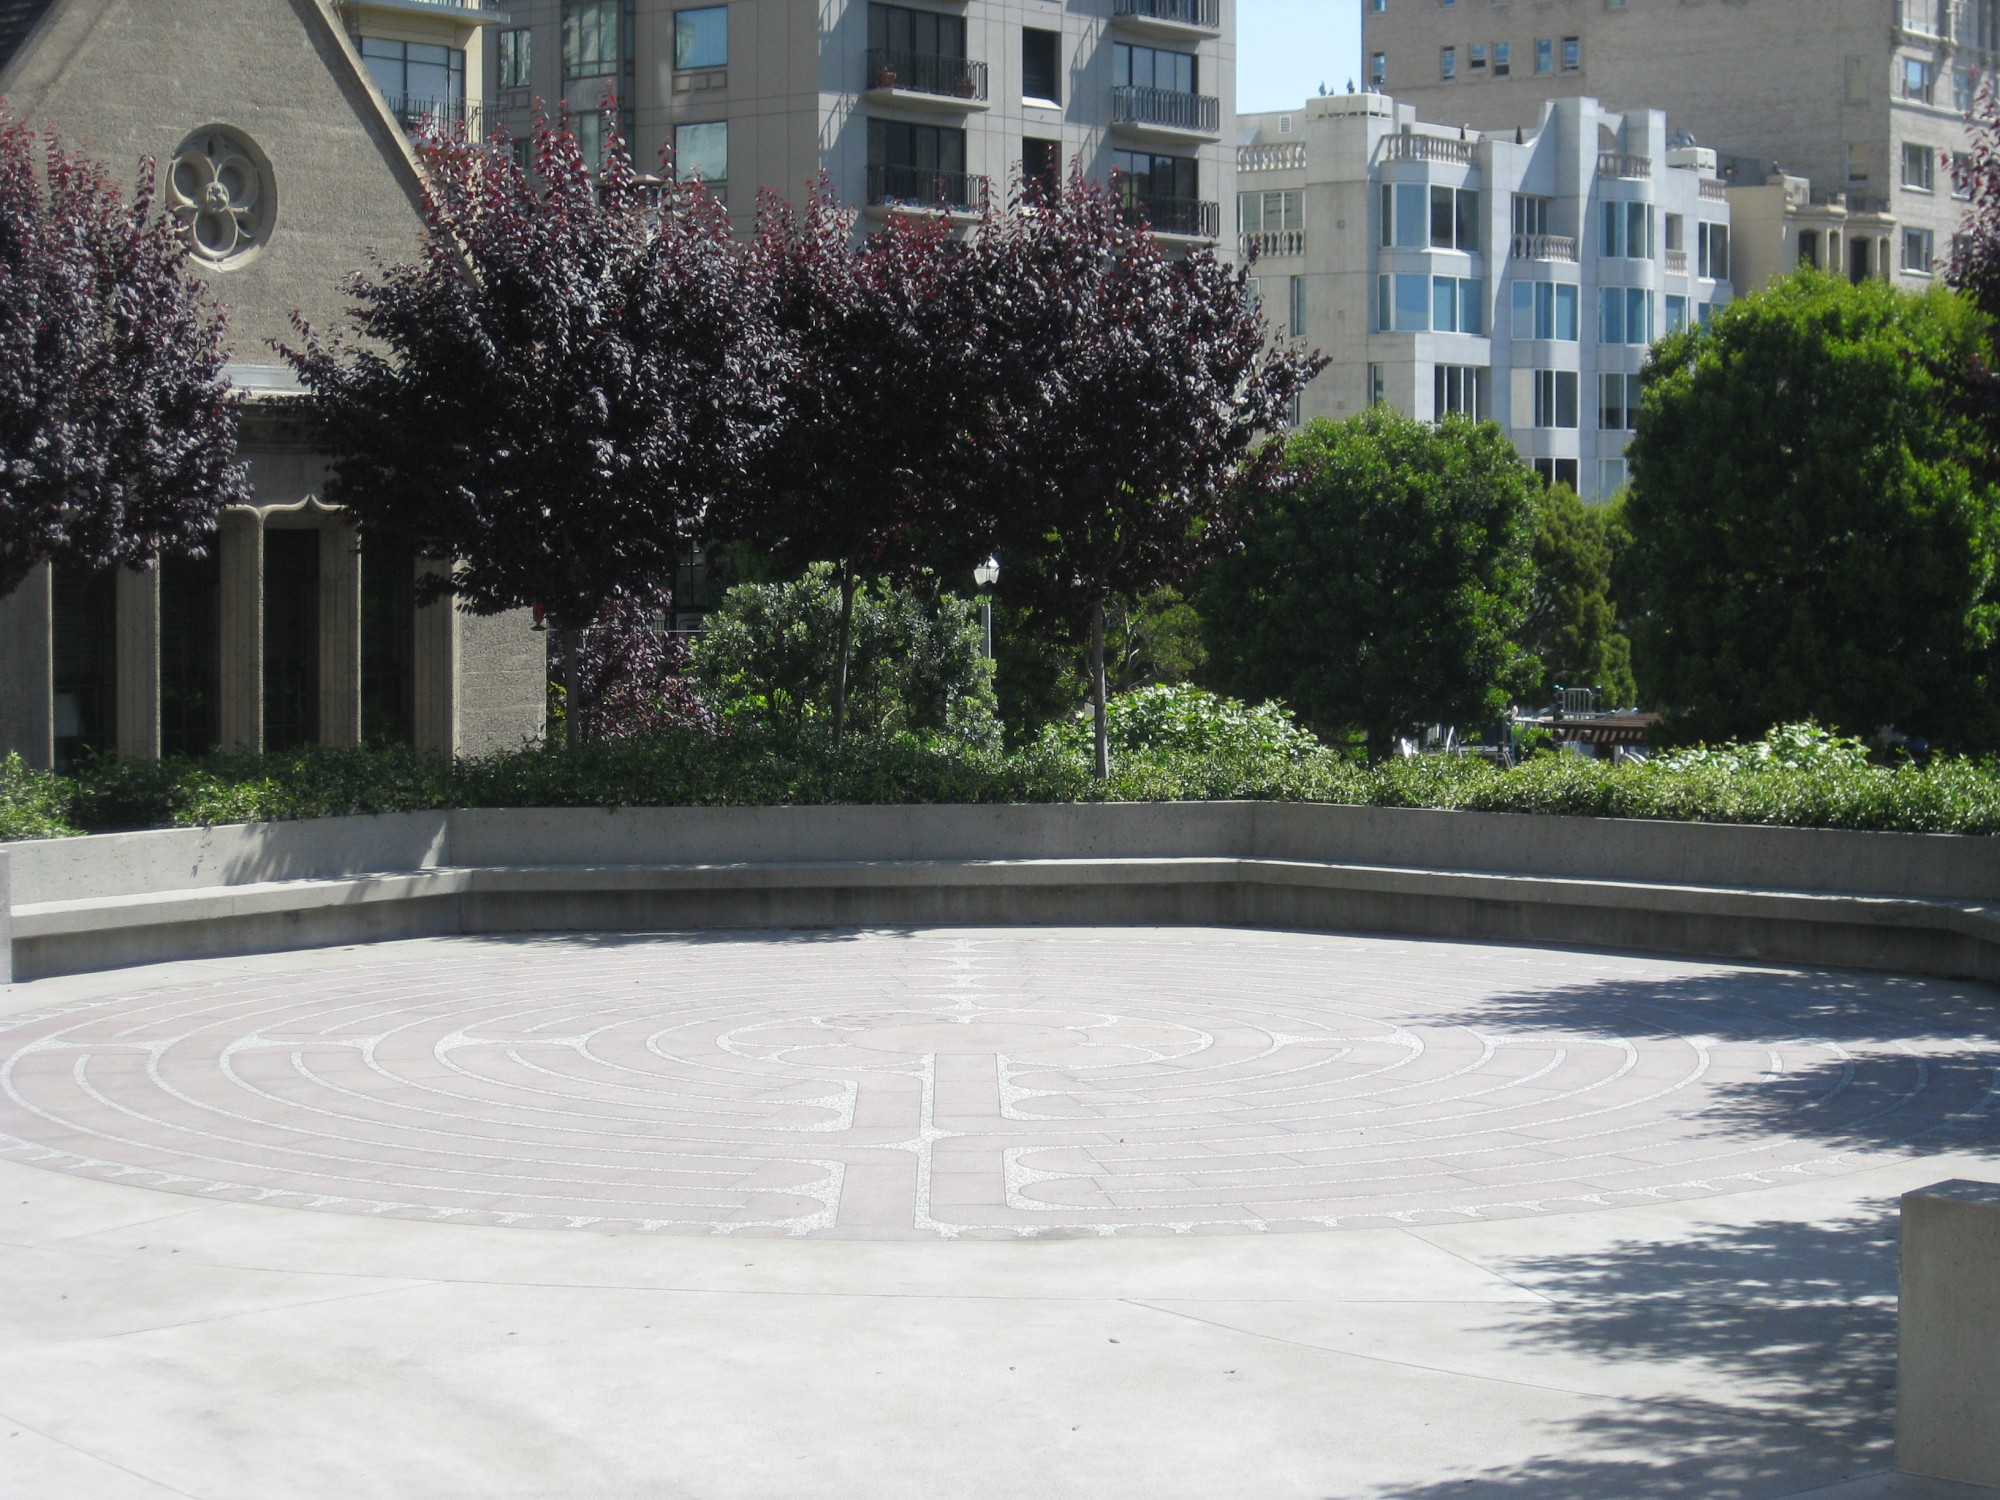 San Francisco Grace Cathedral Outdoor Labyrinth | California